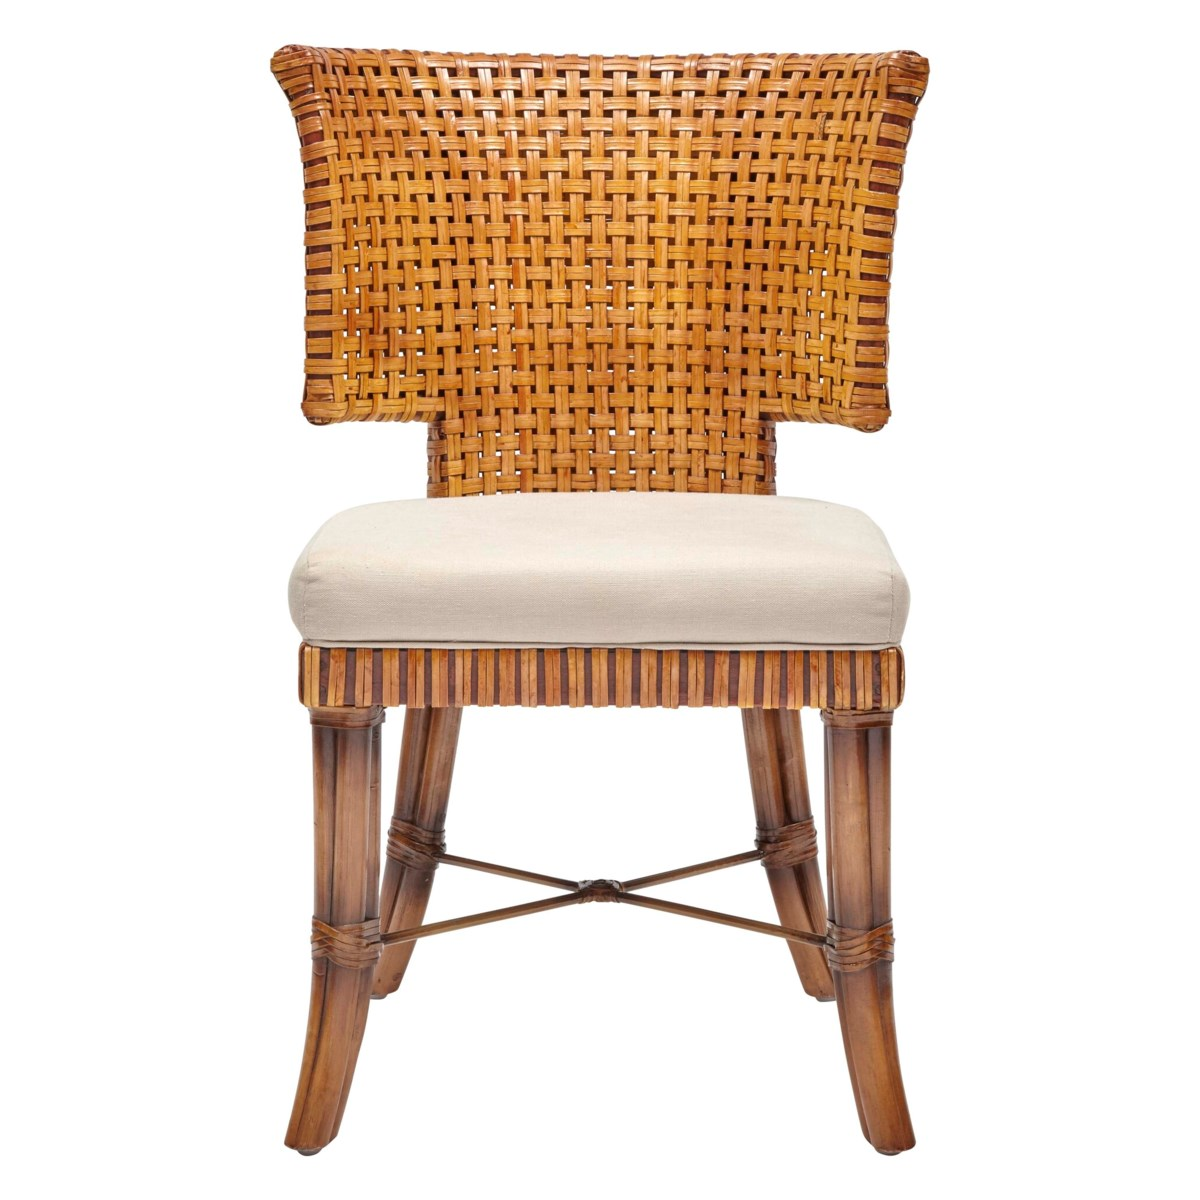 Sidney Chair Leather Color - Chestnut  Cushion Color - Cream